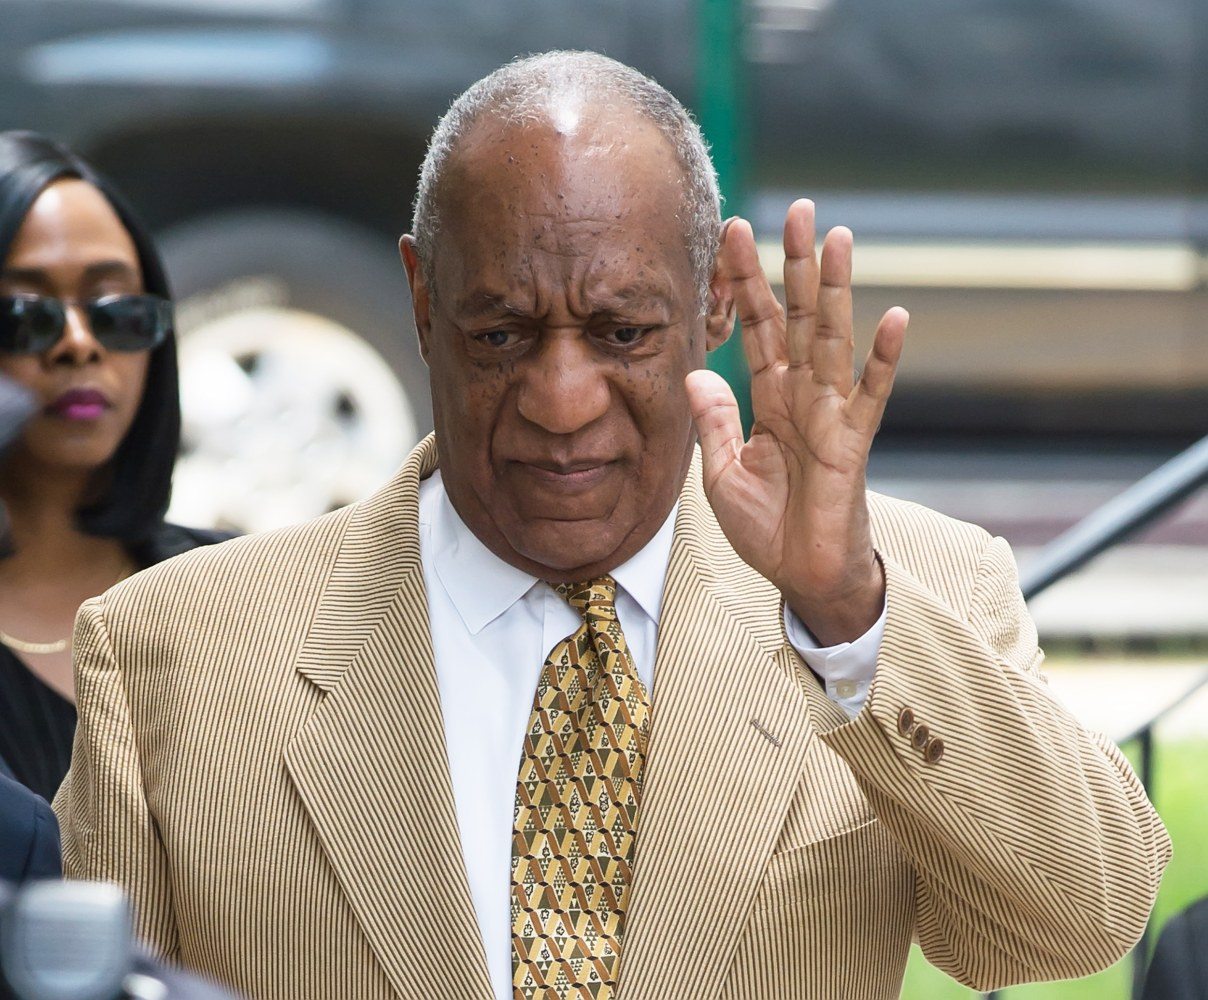 Bill Cosby's Alleged Victim Speaks Out After Case Was Dismissed